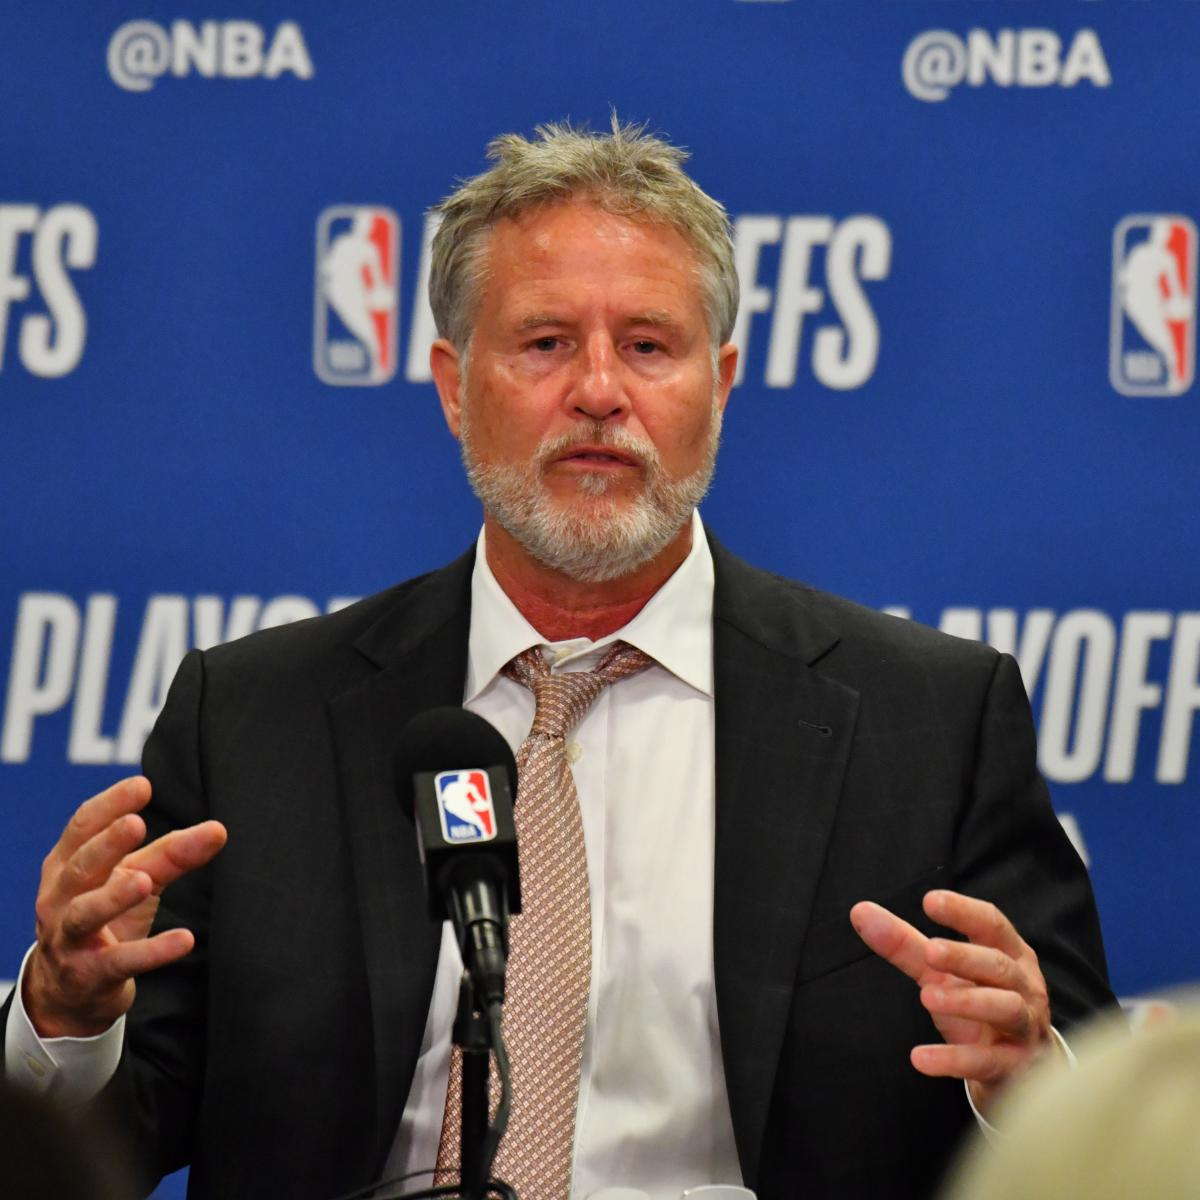 76ers Rumors: Brett Brown's Job 'Might Be in Jeopardy' After Raptors Loss